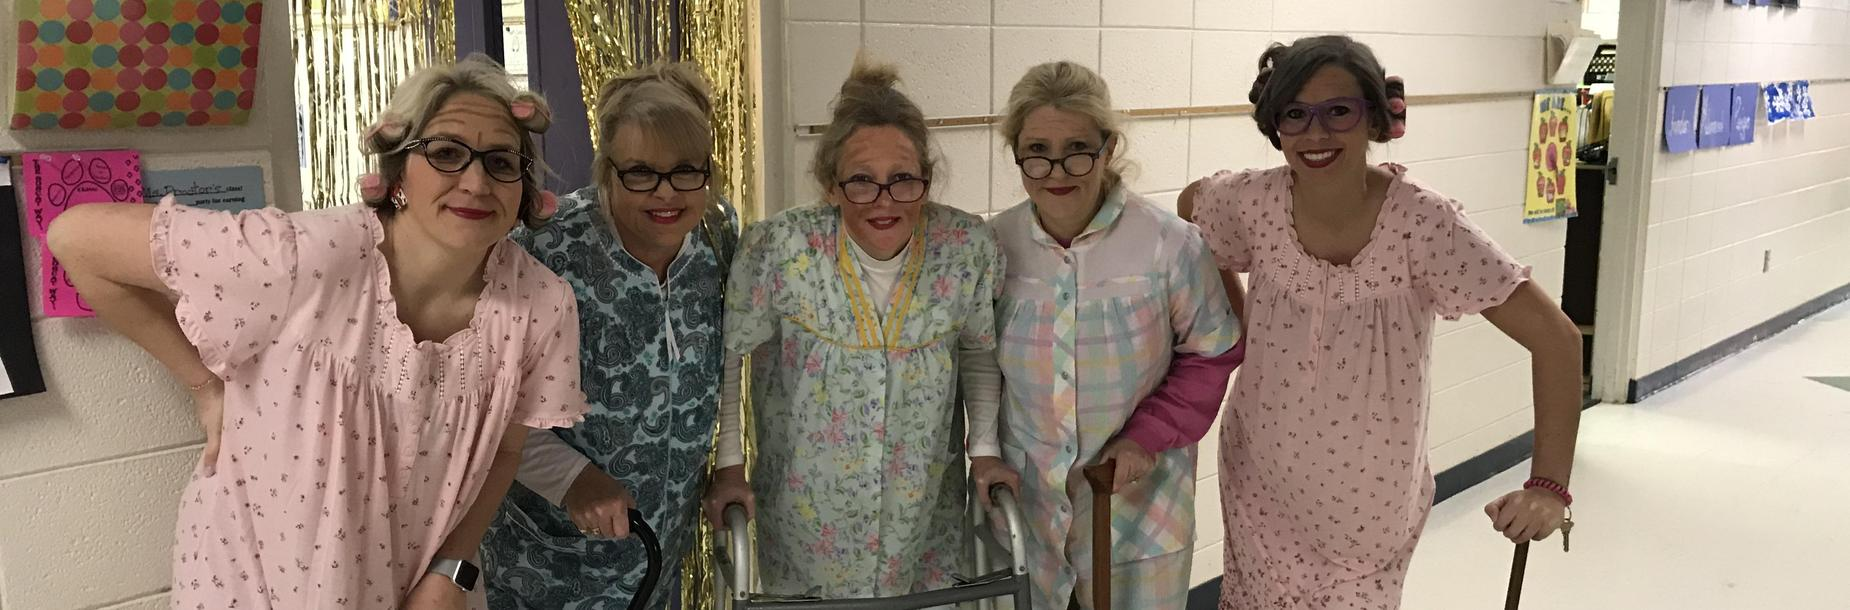 Teachers posed for picture dressed up as the elderly in celebration of 100 days of school